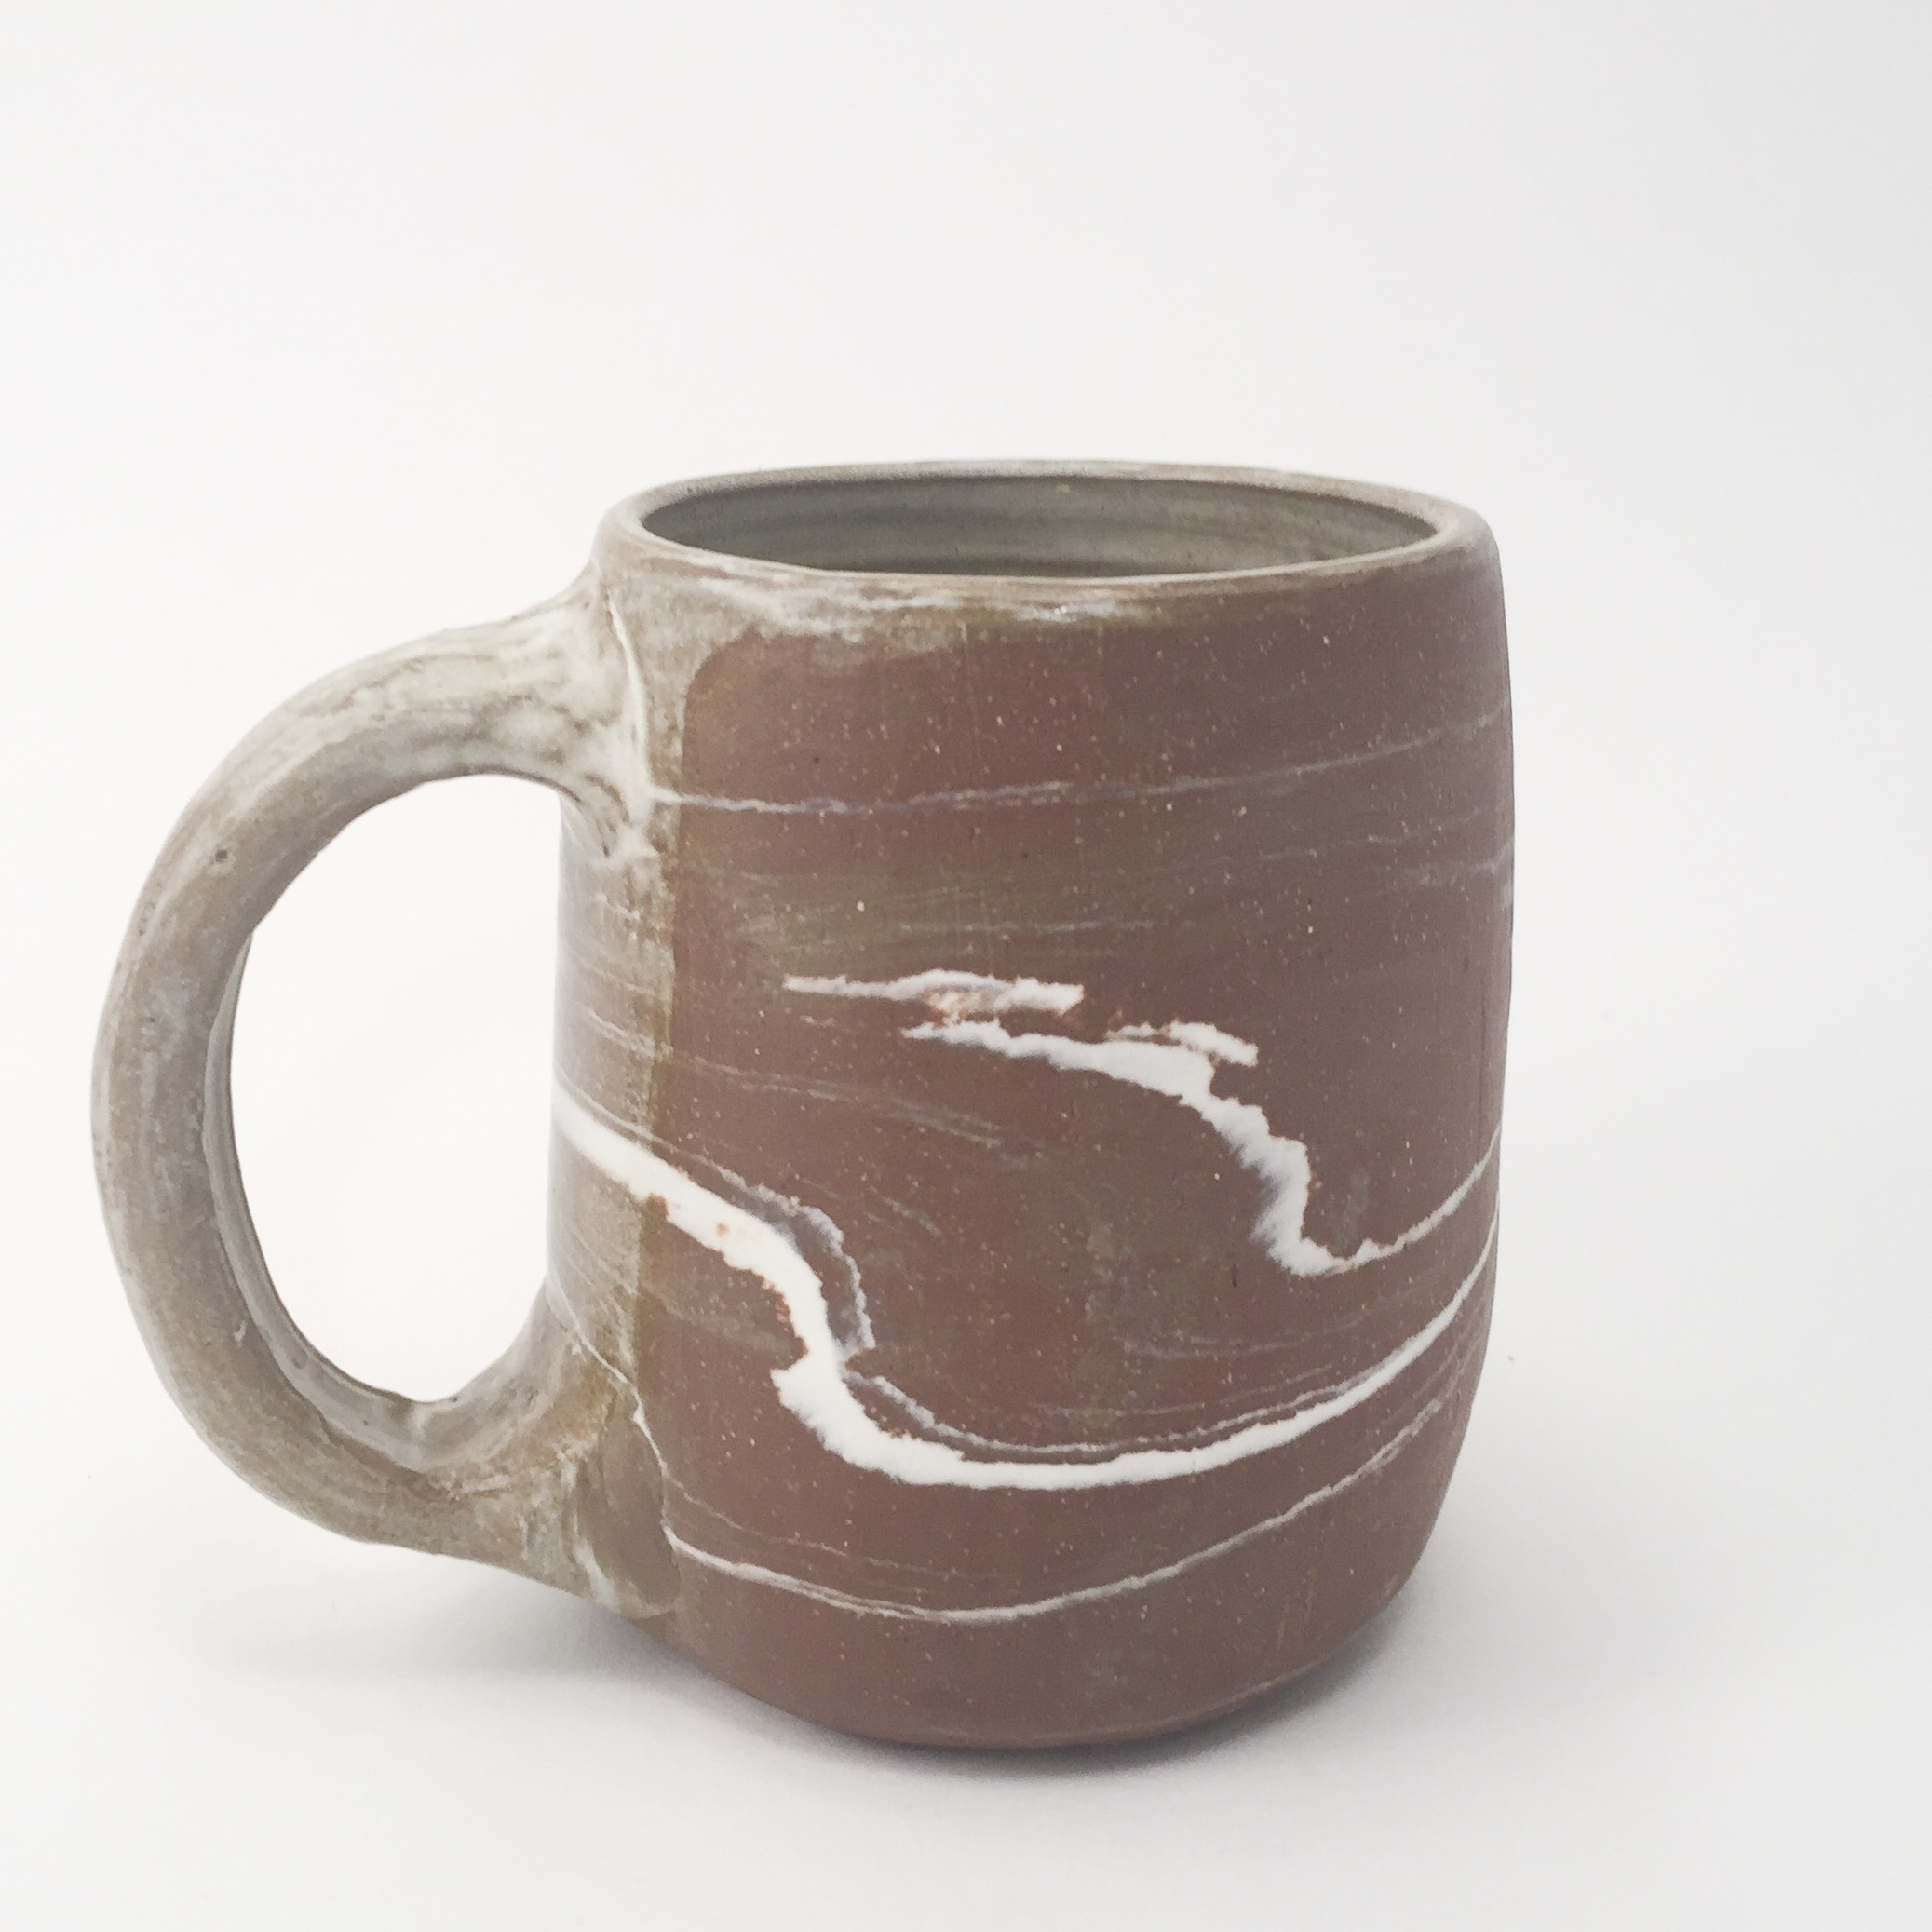 I'm Hendall Loeffler and killdeer pottery is my ceramic project based out of Durham, North Carolina. -